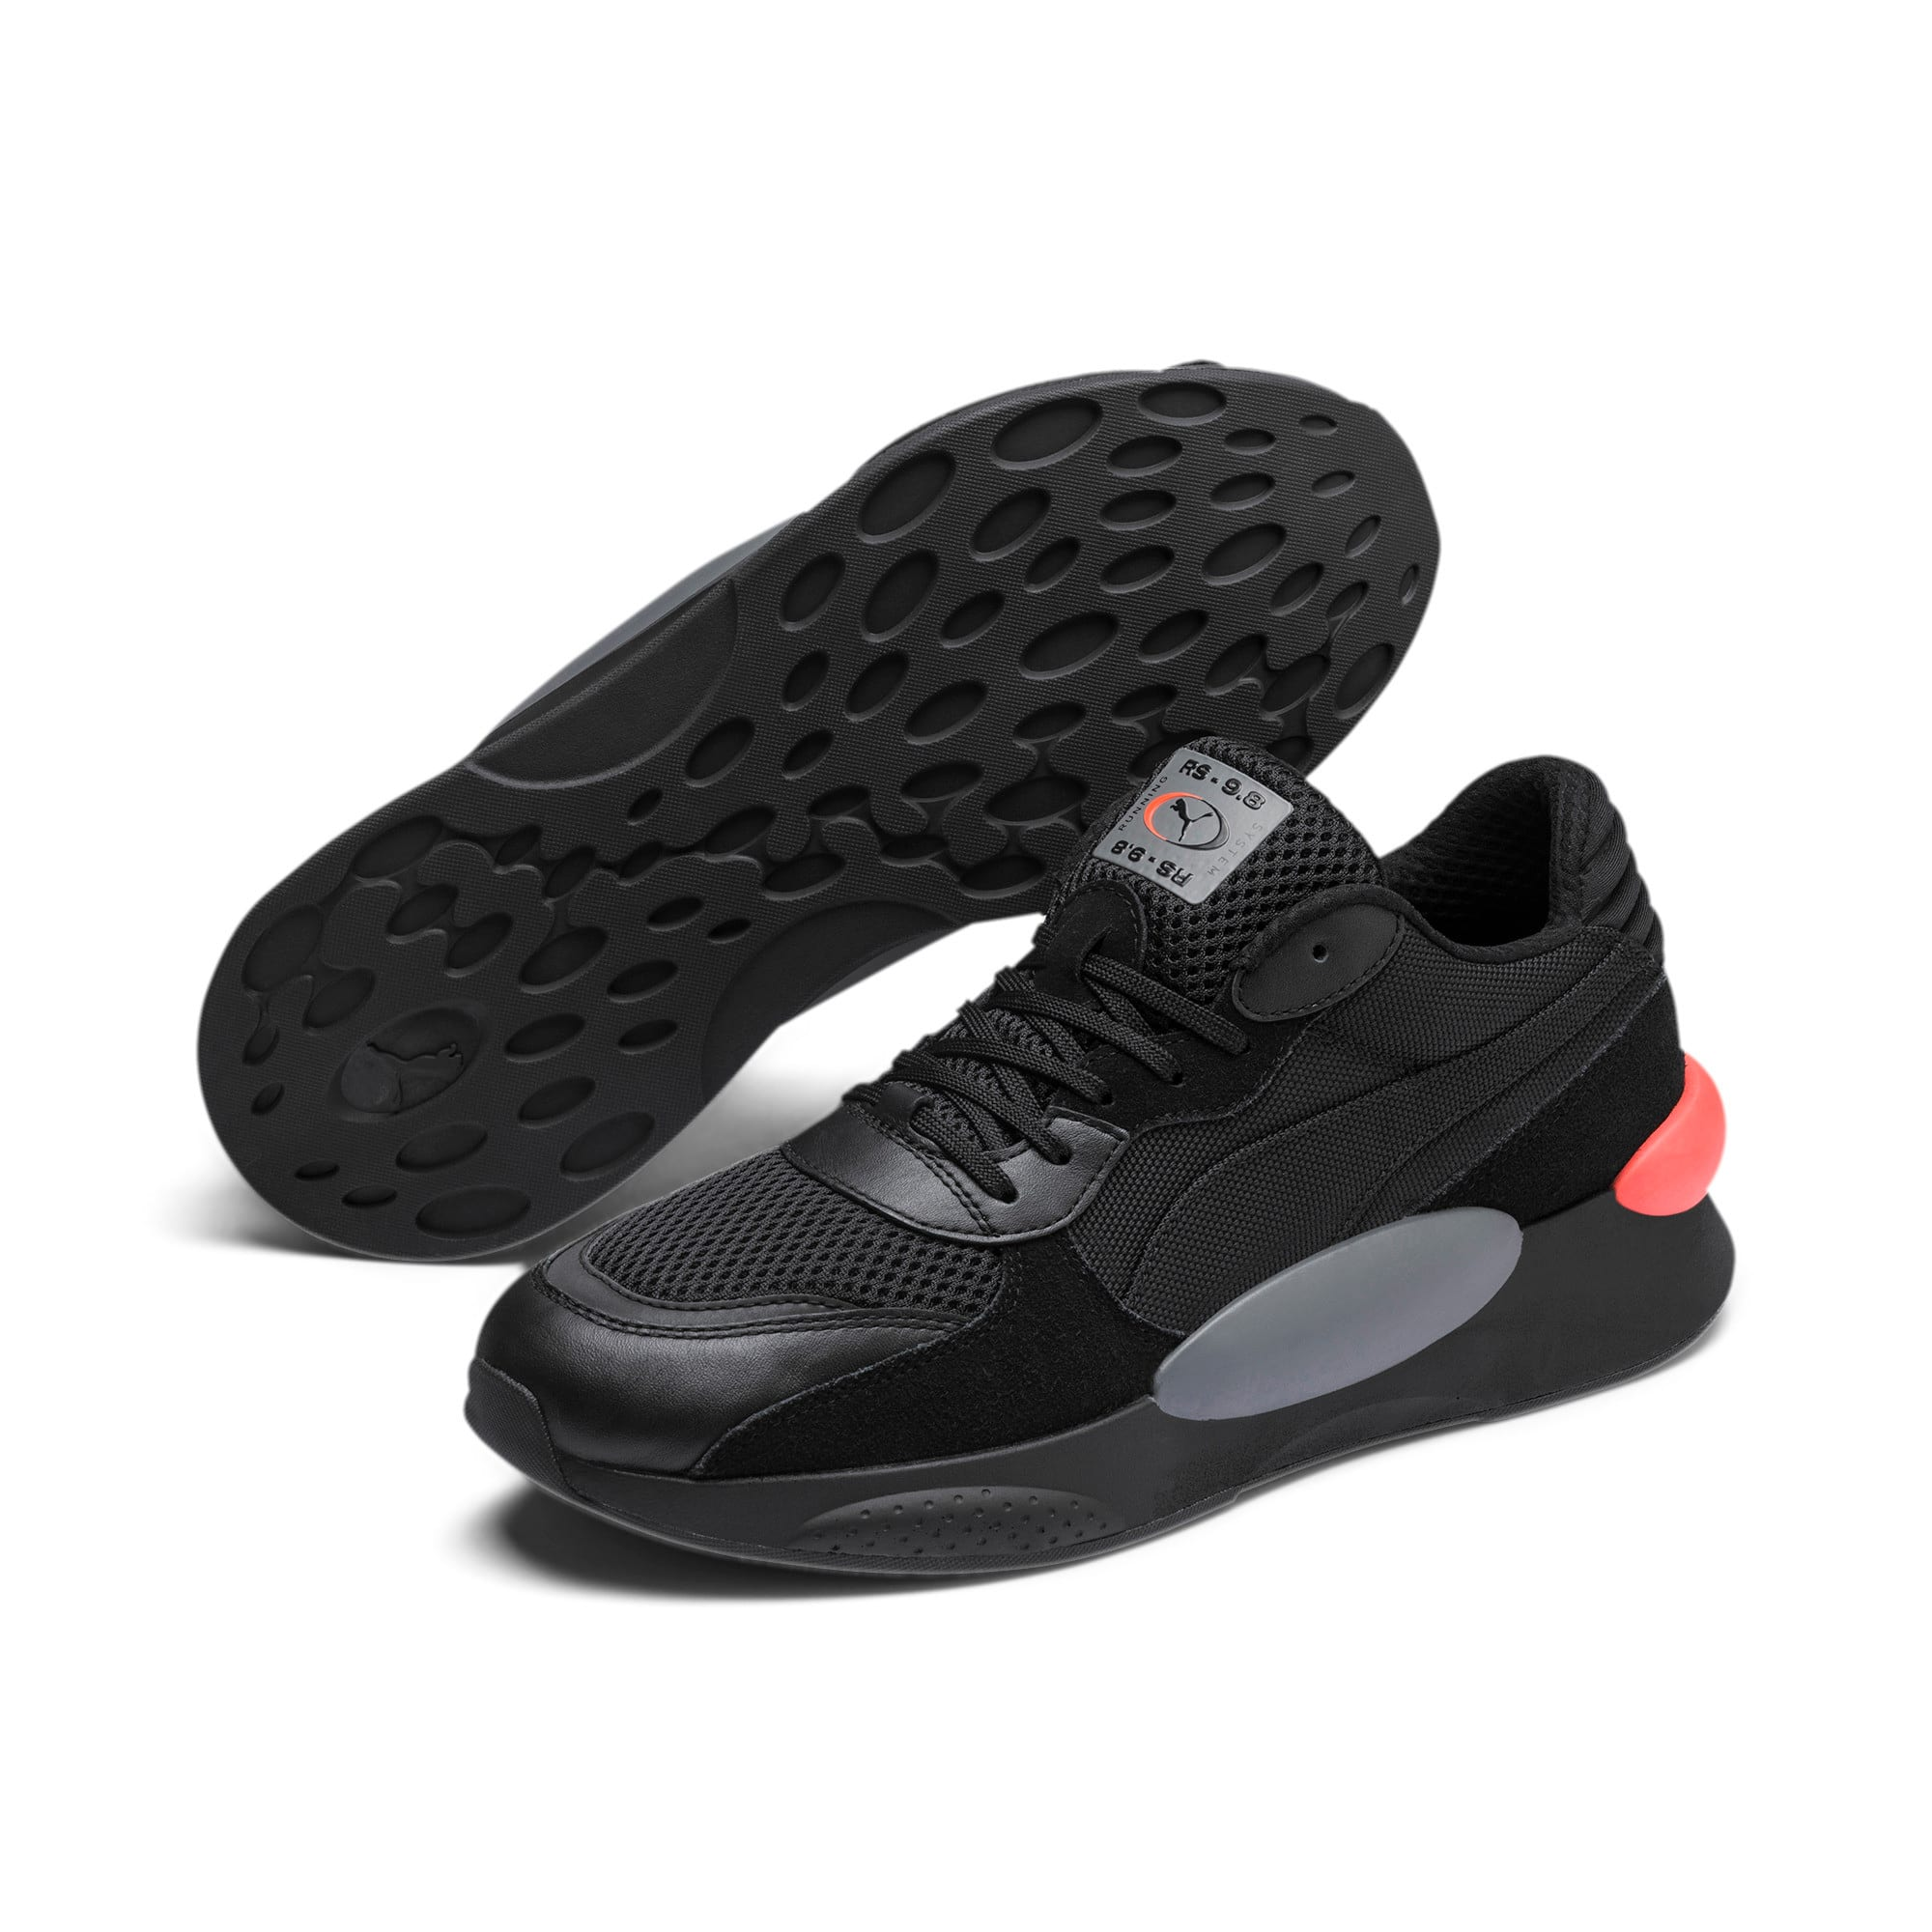 Thumbnail 2 of RS 9.8 コズミック スニーカー, Puma Black, medium-JPN